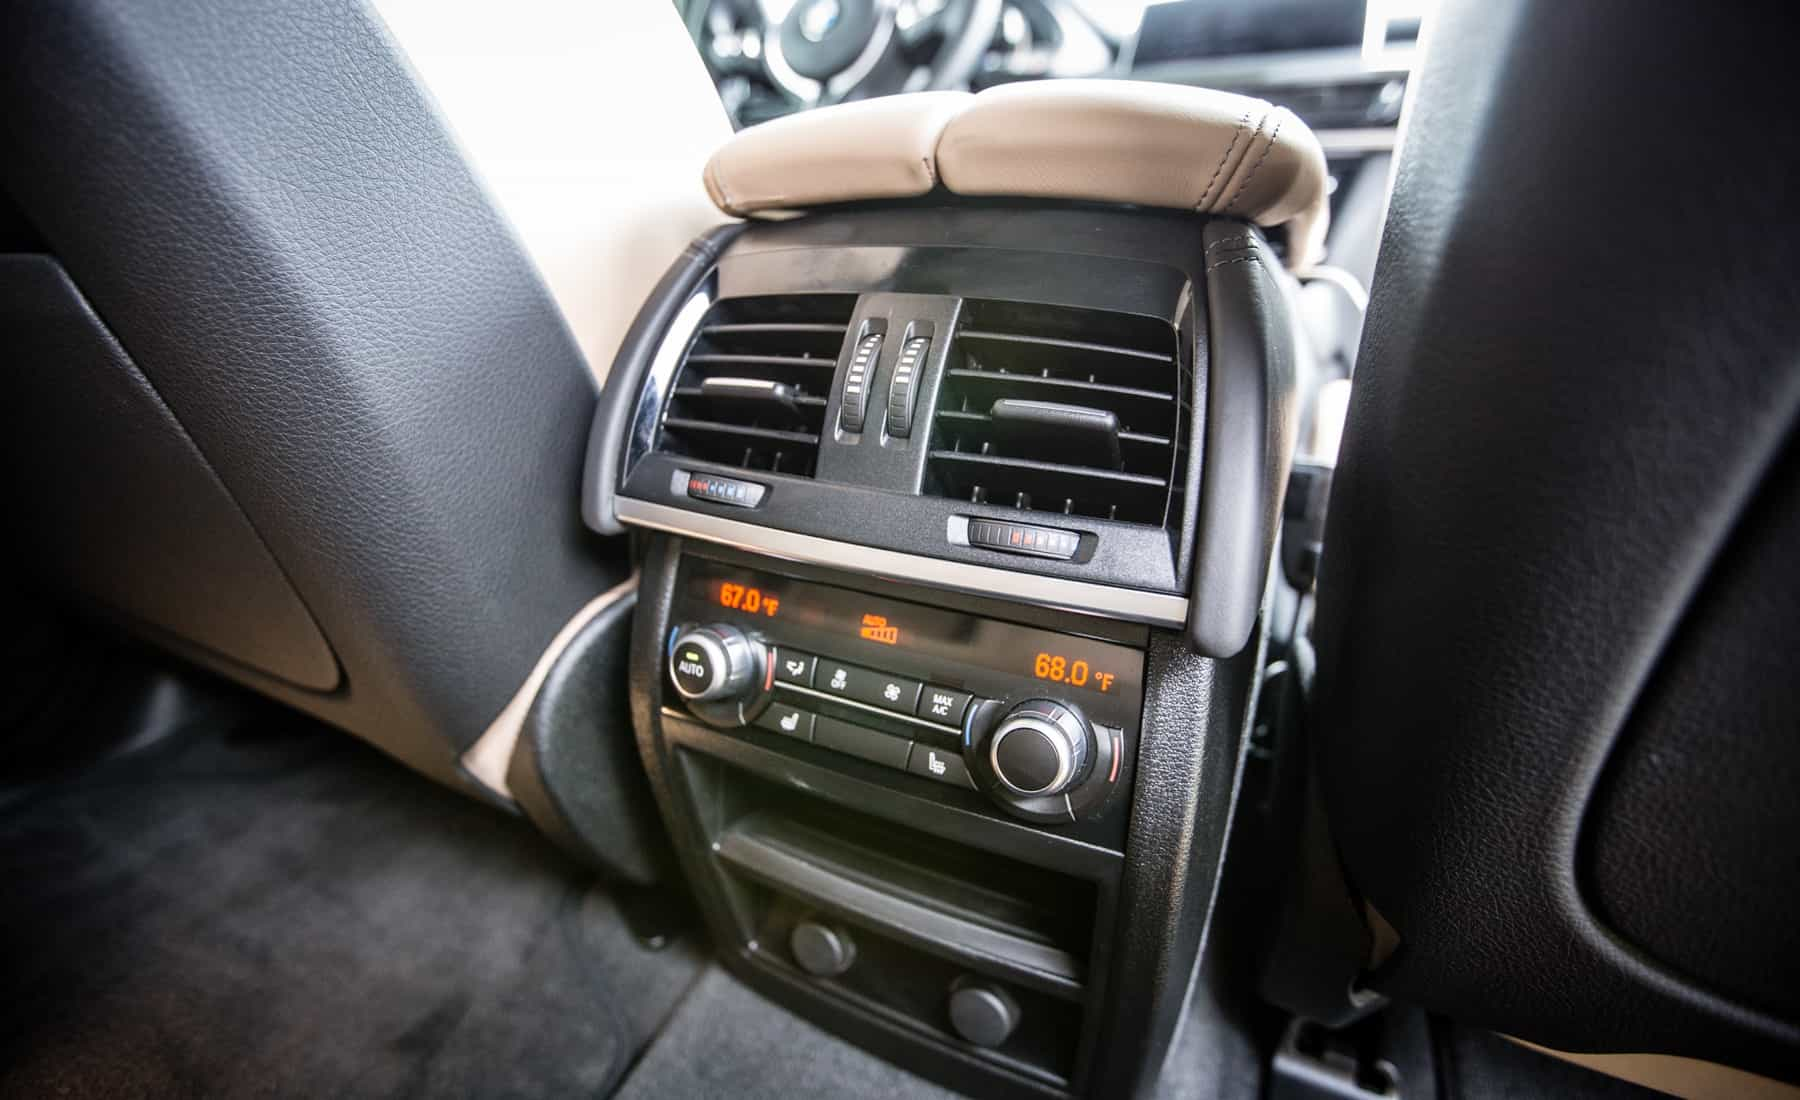 2017 BMW X5 M Interior View Seats Rear Climate Control (Photo 17 of 35)